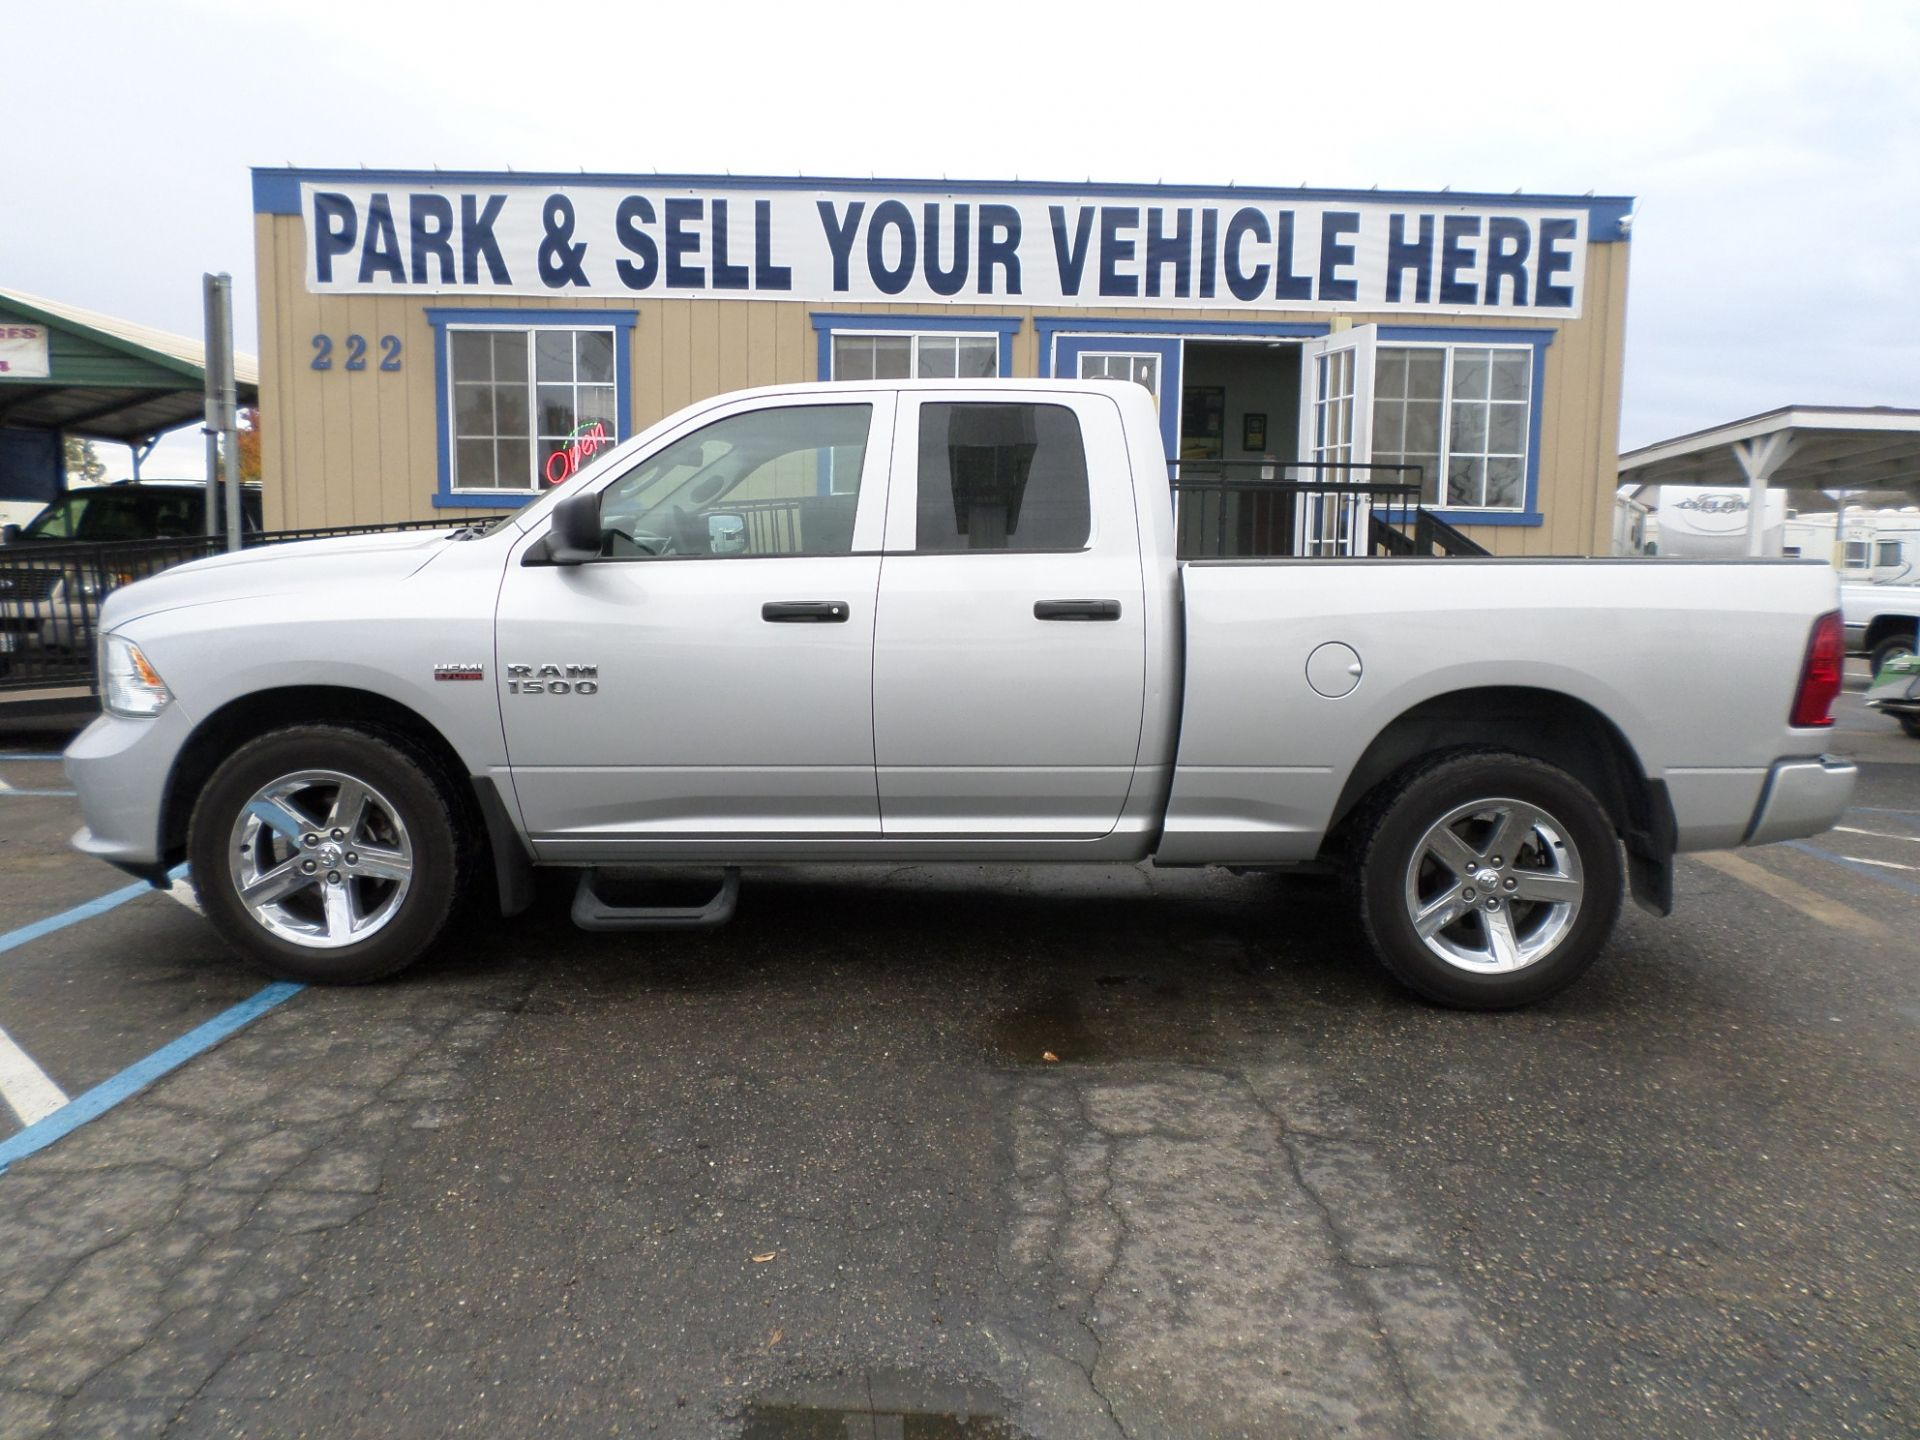 Truck For Sale 2014 Dodge Ram 1500 Quad Cab Short Bed In Lodi Stockton Ca Ram 1500 Quad Cab Dodge Ram 1500 Quad